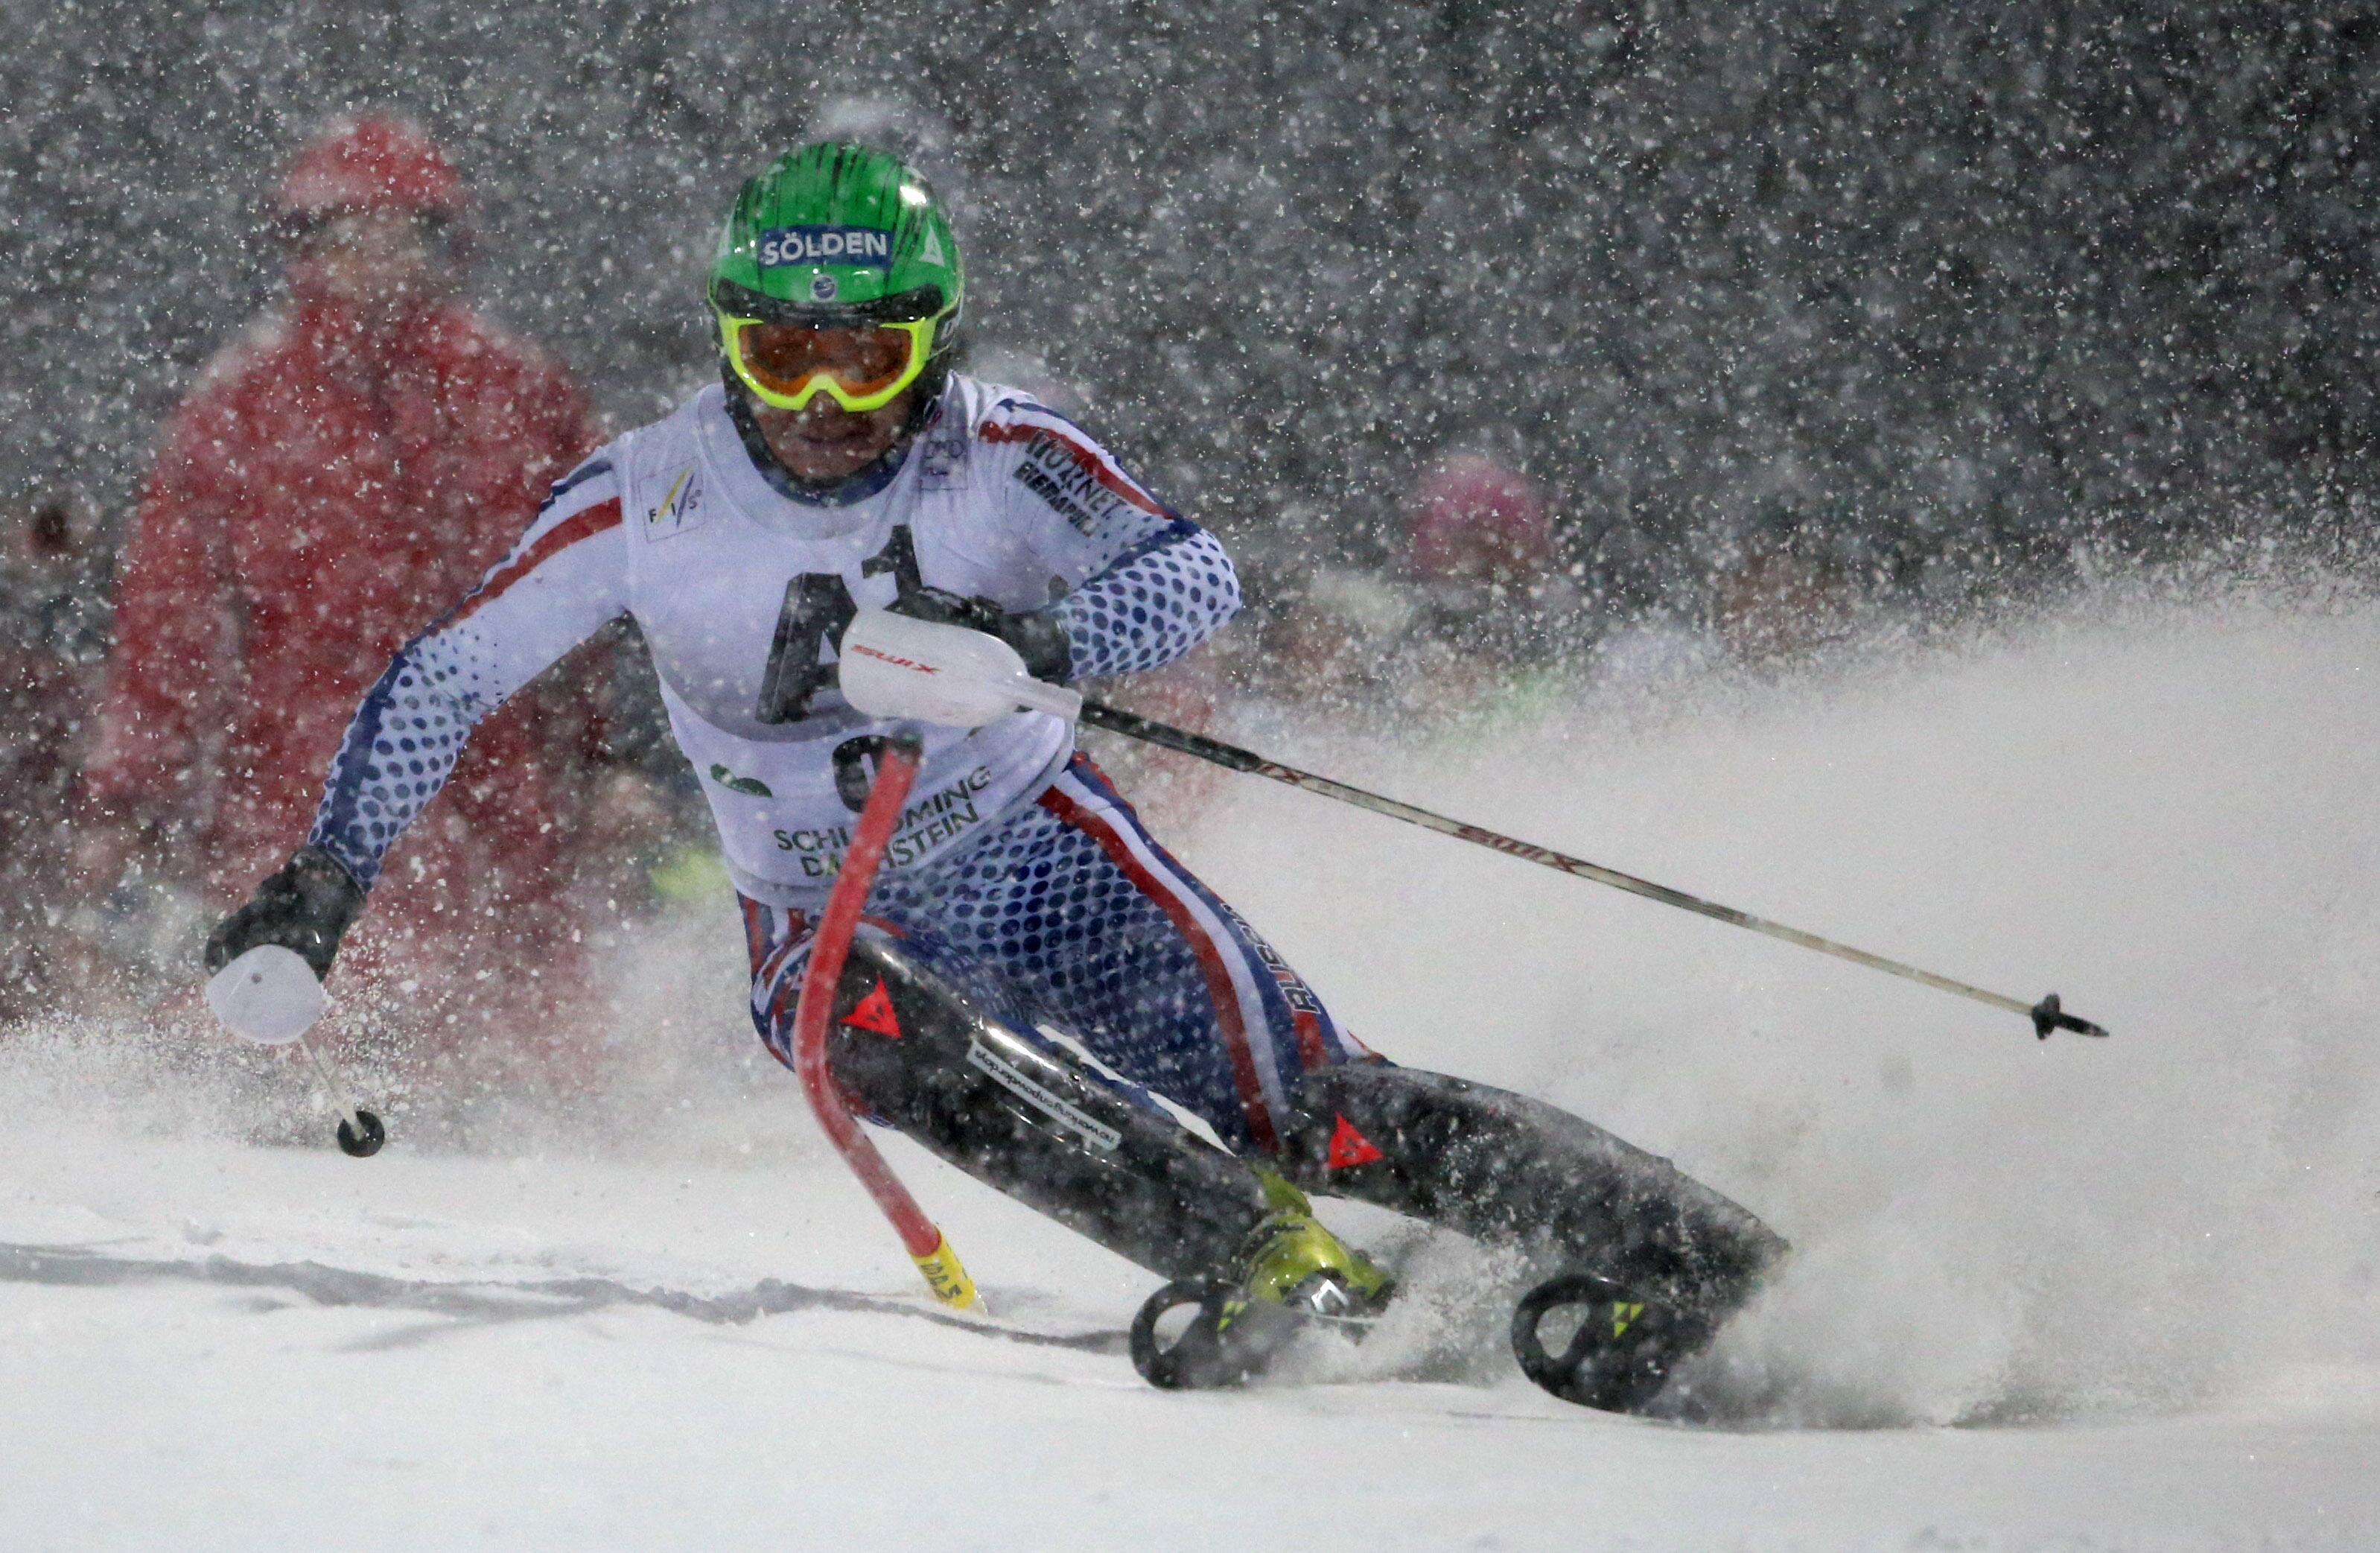 Russian skier Khoroshilov wins WCup slalom by huge margin